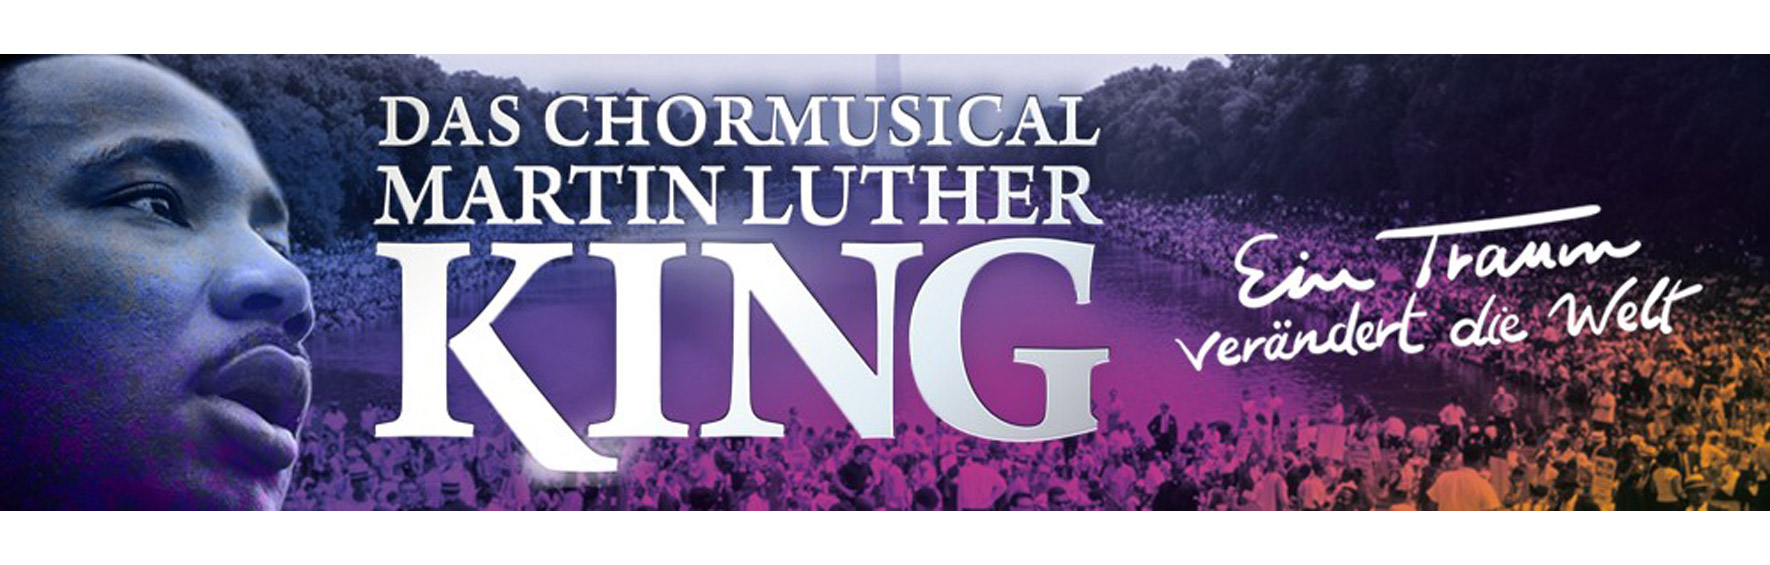 Chormusical Martin-Luther-King